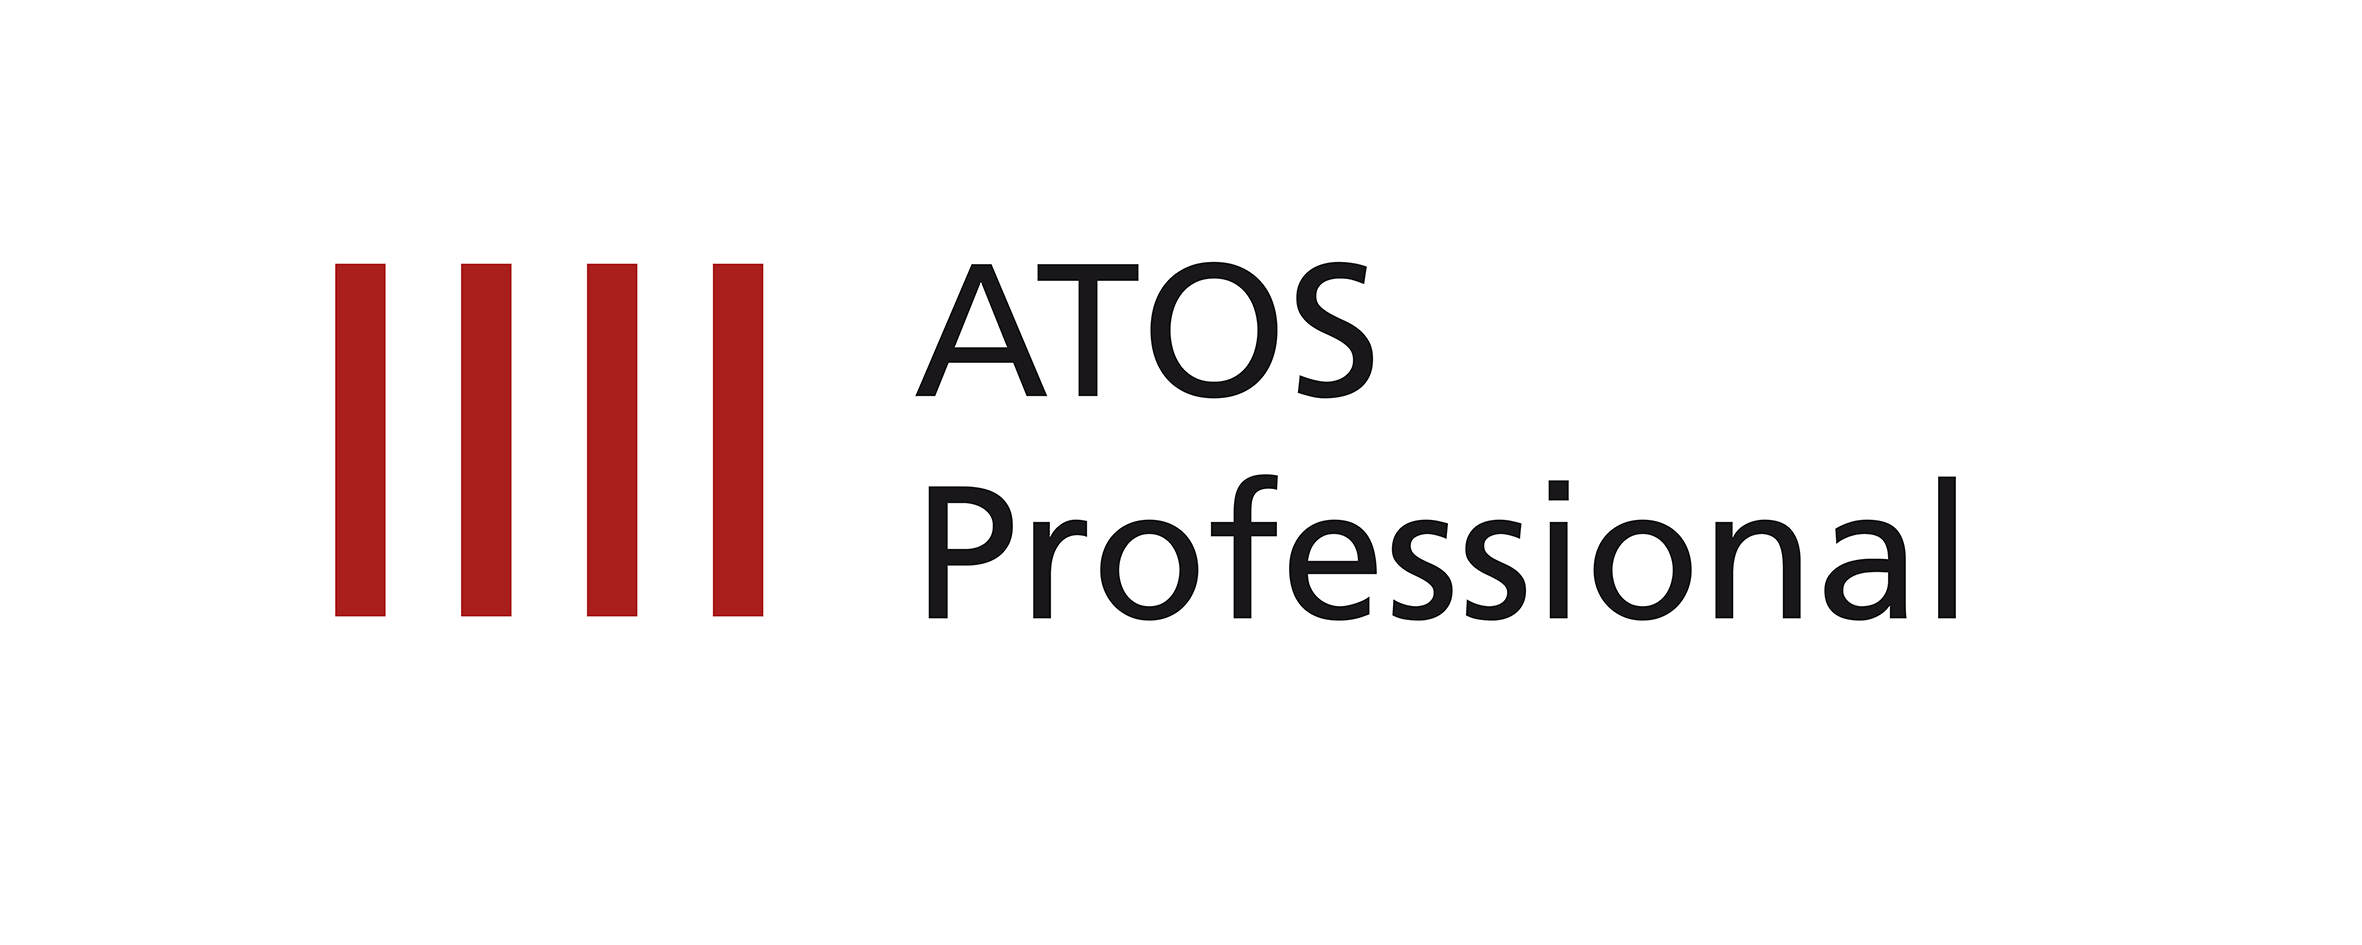 ATOS Professional - intelligent and comprehensive 3D metrology software for ATOS 3D scanning systems